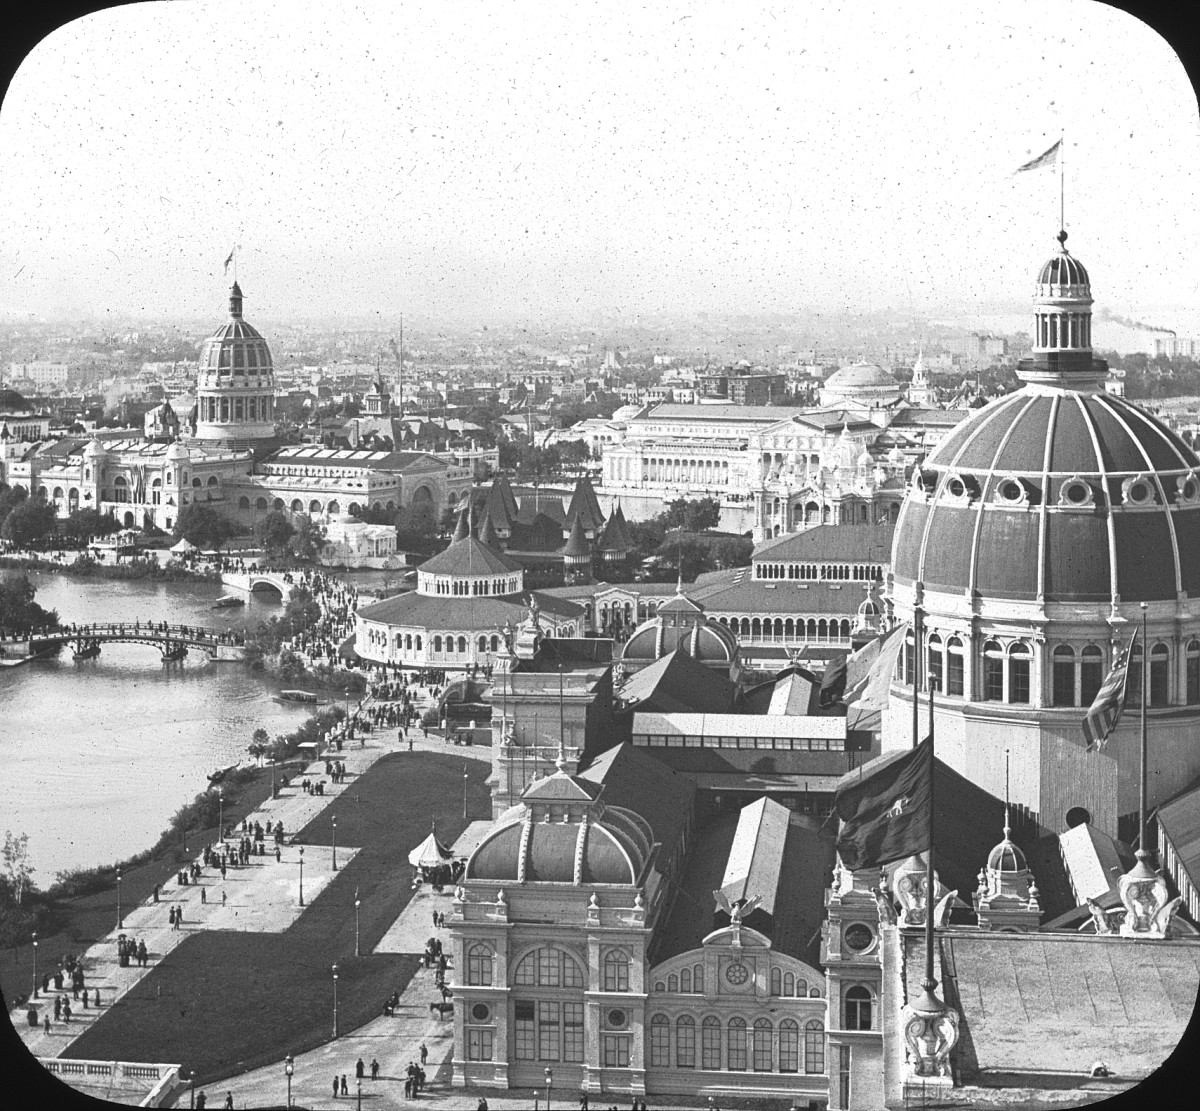 CHICAGO WORLD'S FAIR: COLUMBIAN EXPOSITION